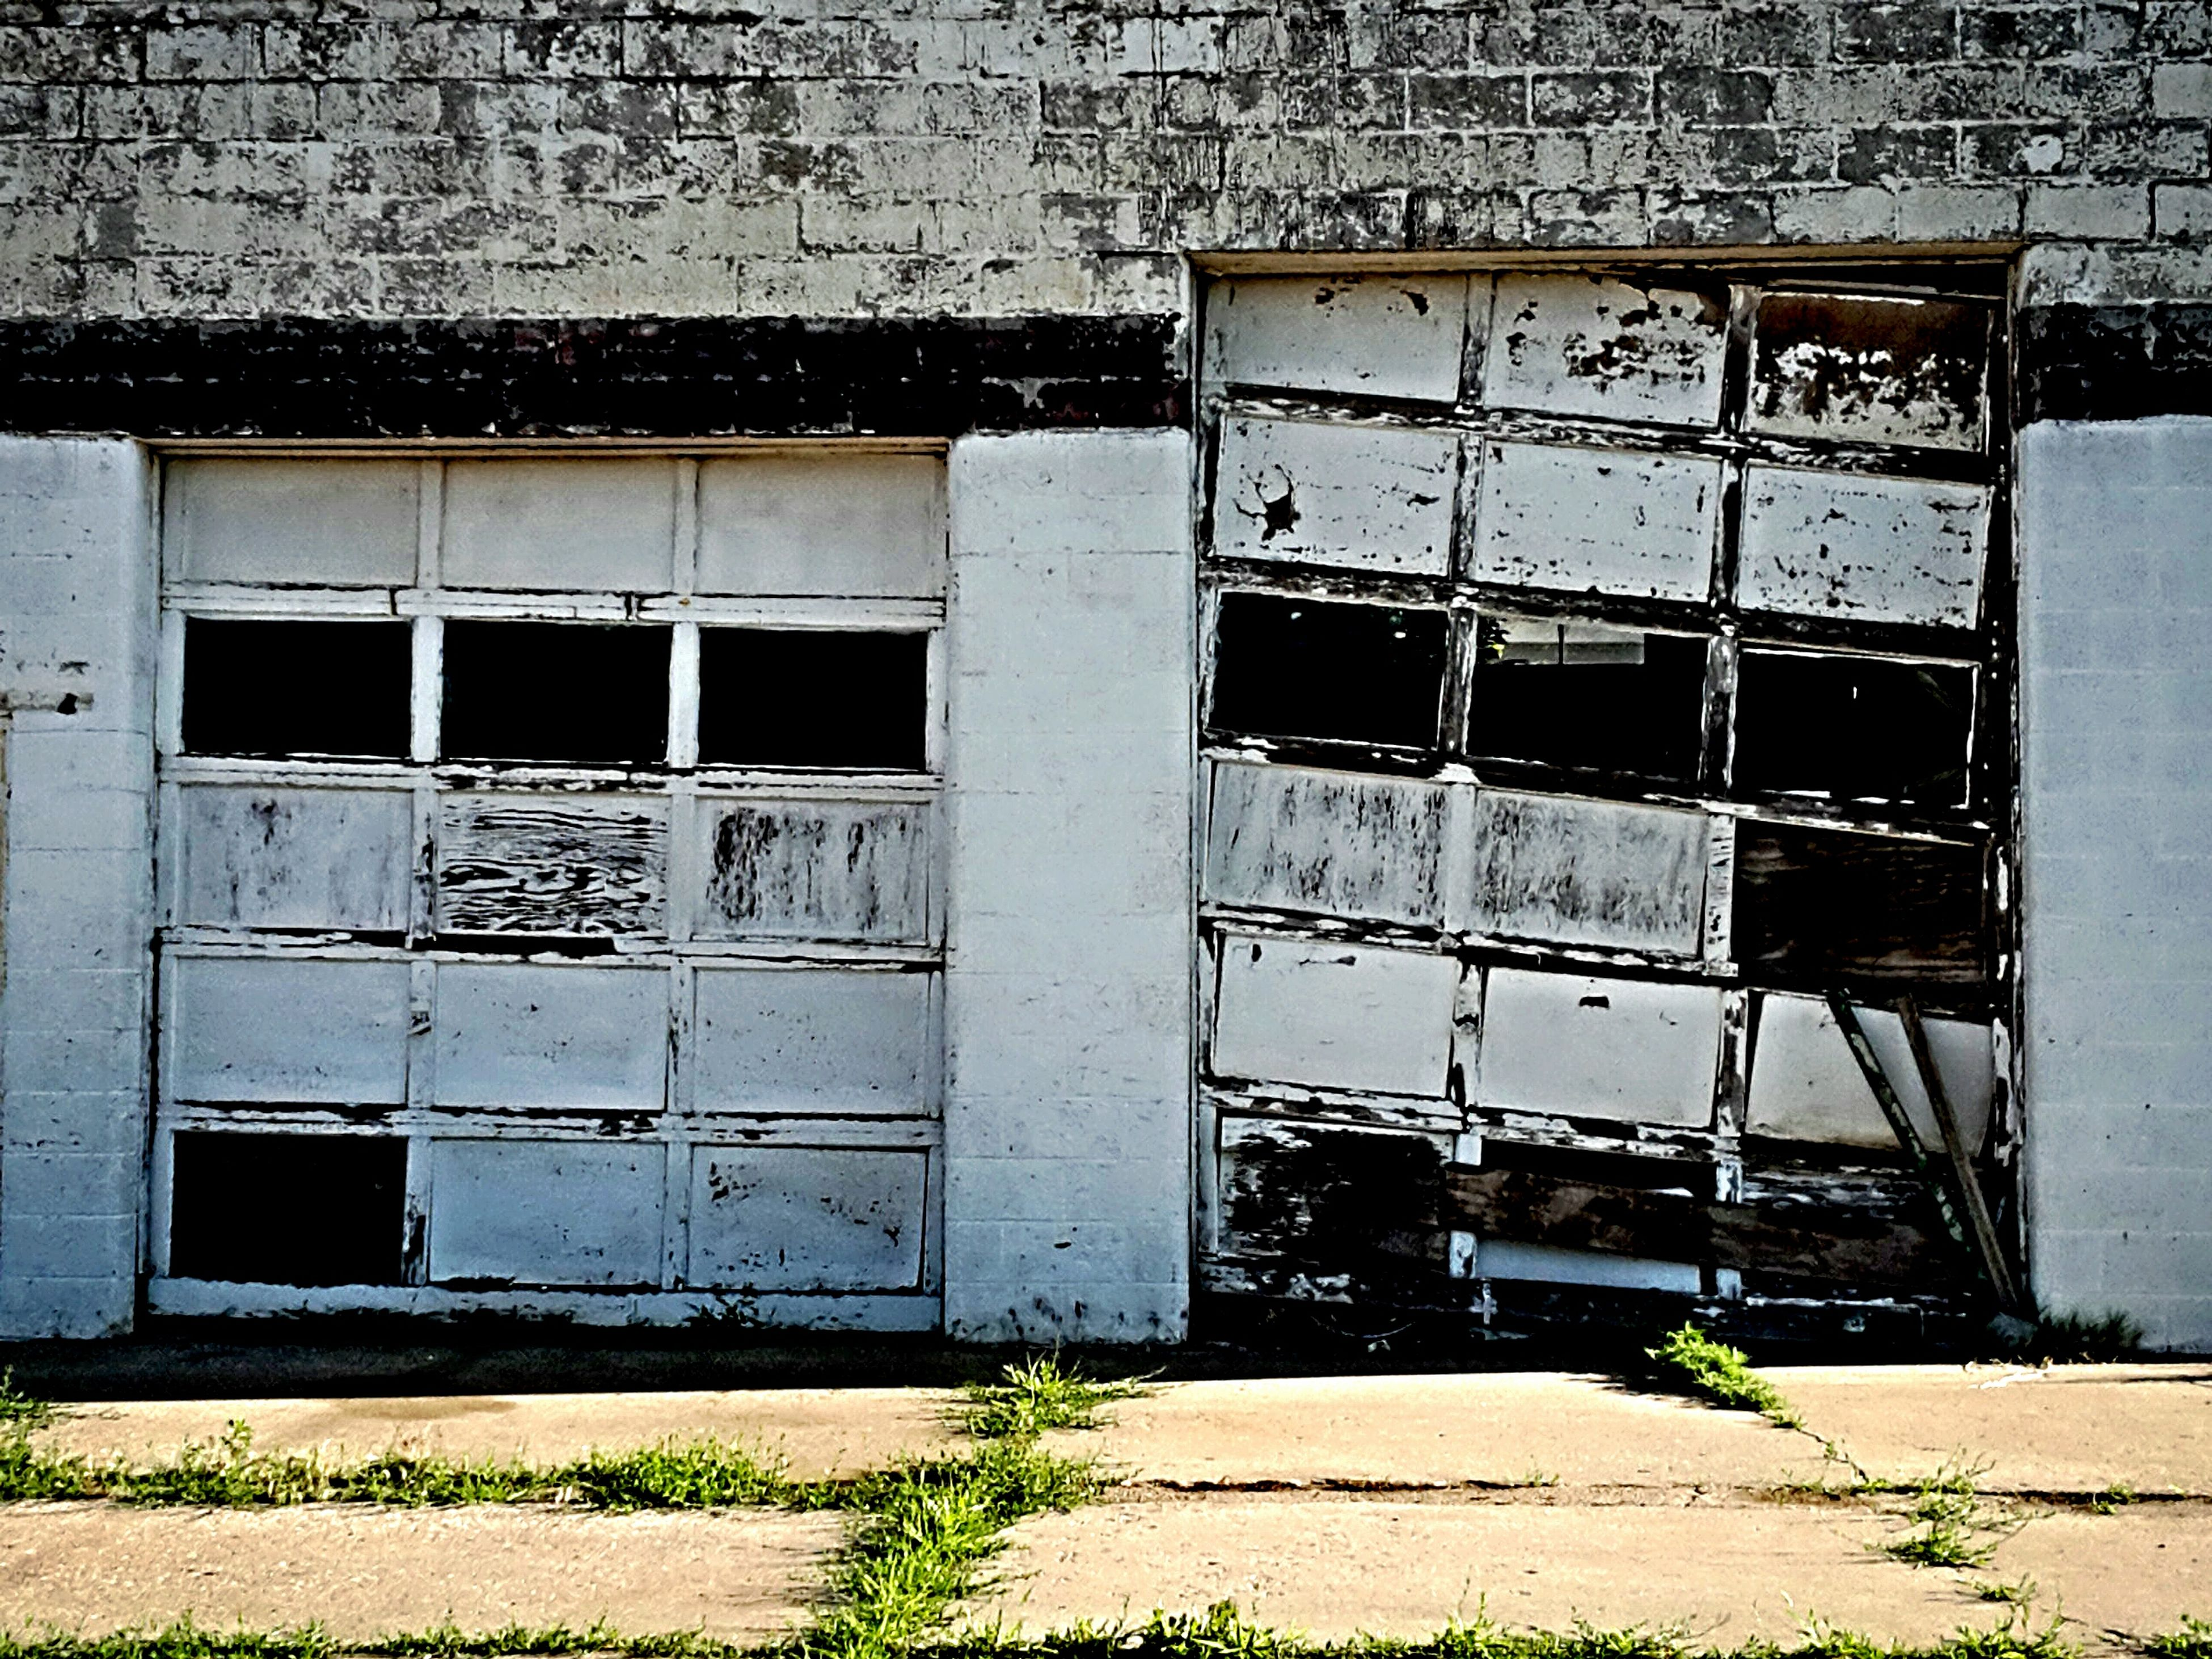 architecture, built structure, building exterior, abandoned, old, obsolete, graffiti, damaged, window, run-down, weathered, deterioration, house, building, wall - building feature, day, door, outdoors, closed, no people